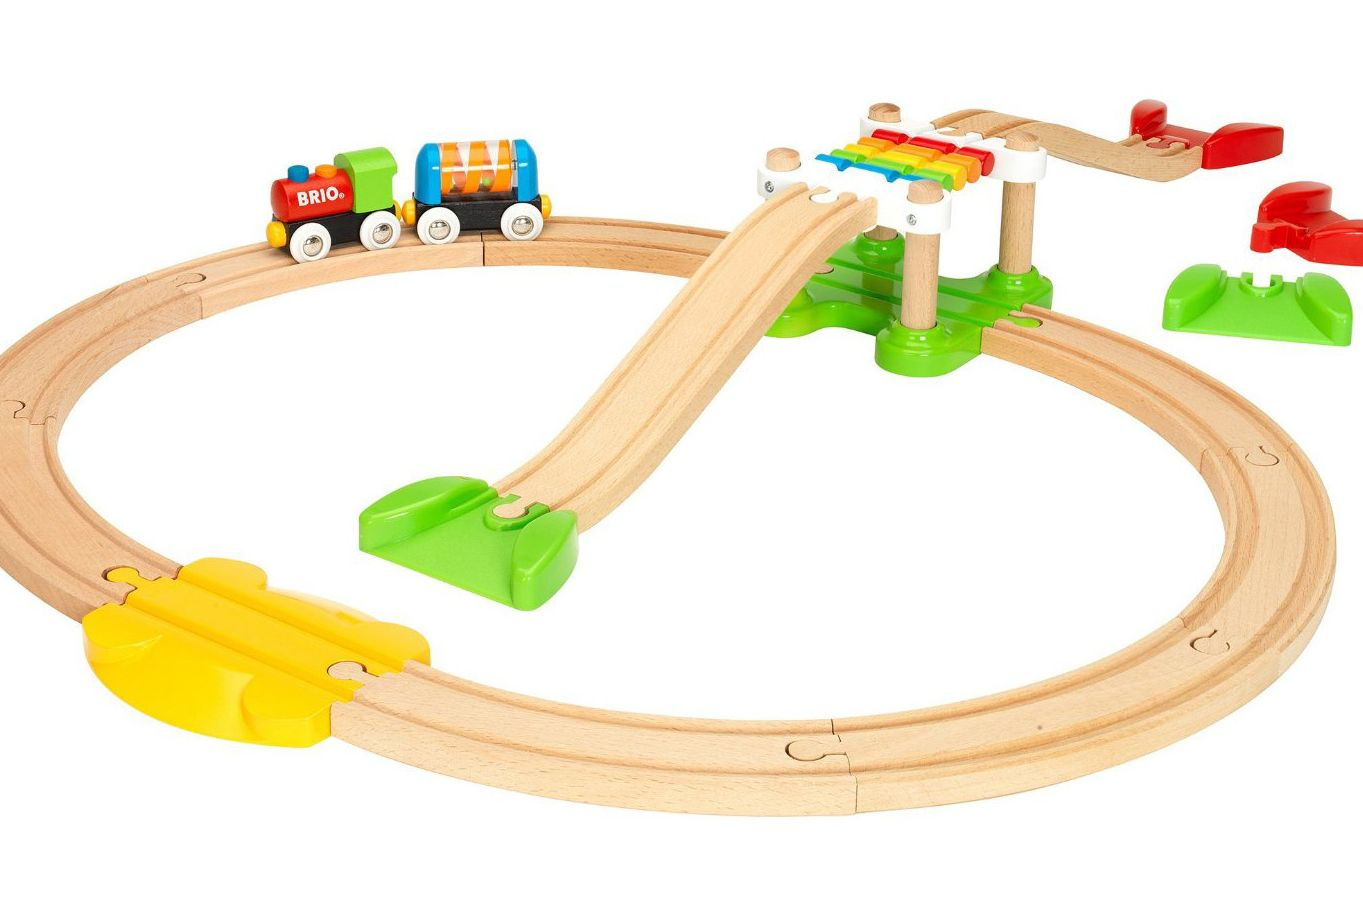 15 Best Toys and Gifts for 2-Year-Olds 2018